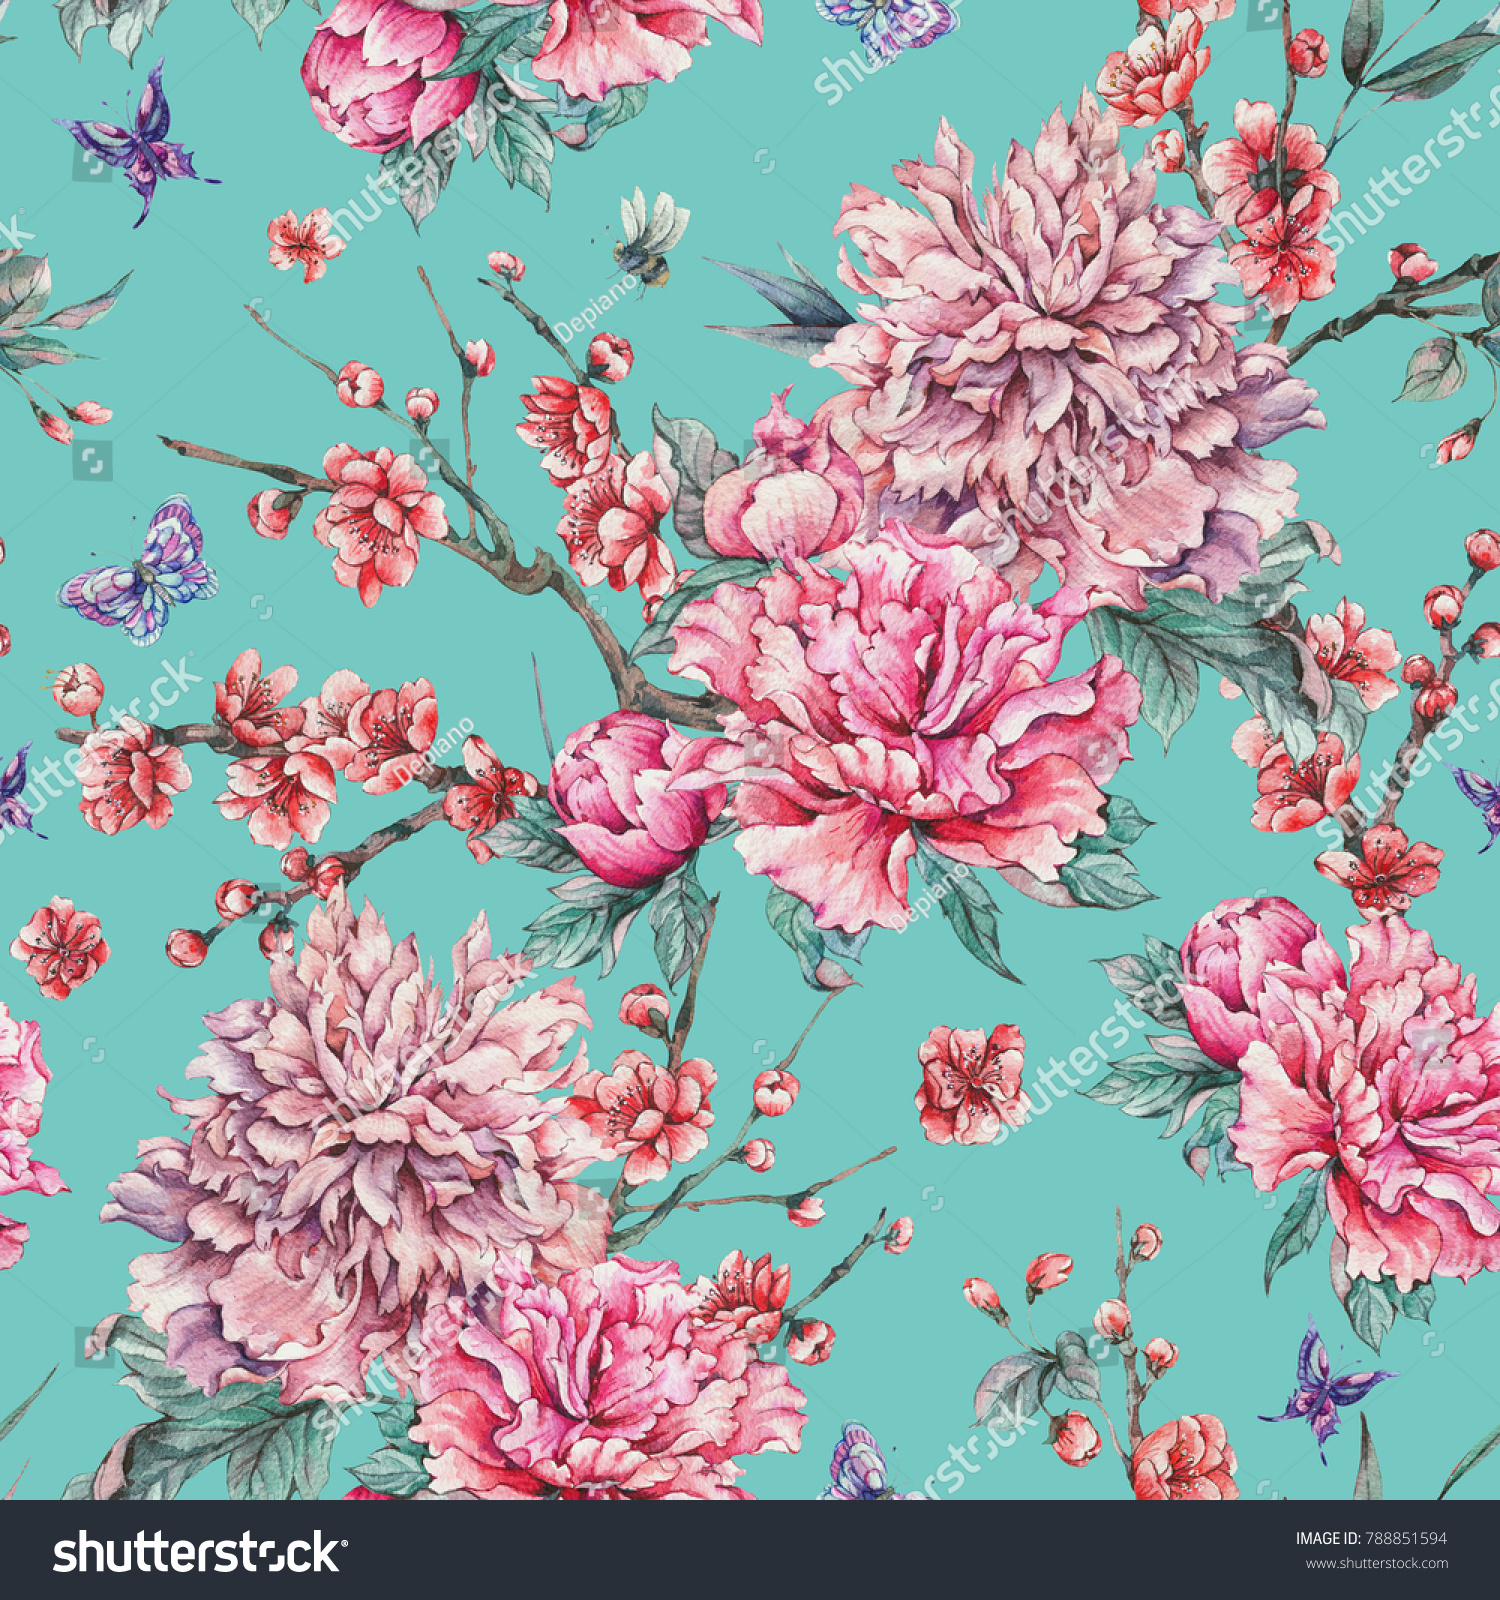 Watercolor Nature Seamless Pattern With Pink Flowers Blooming